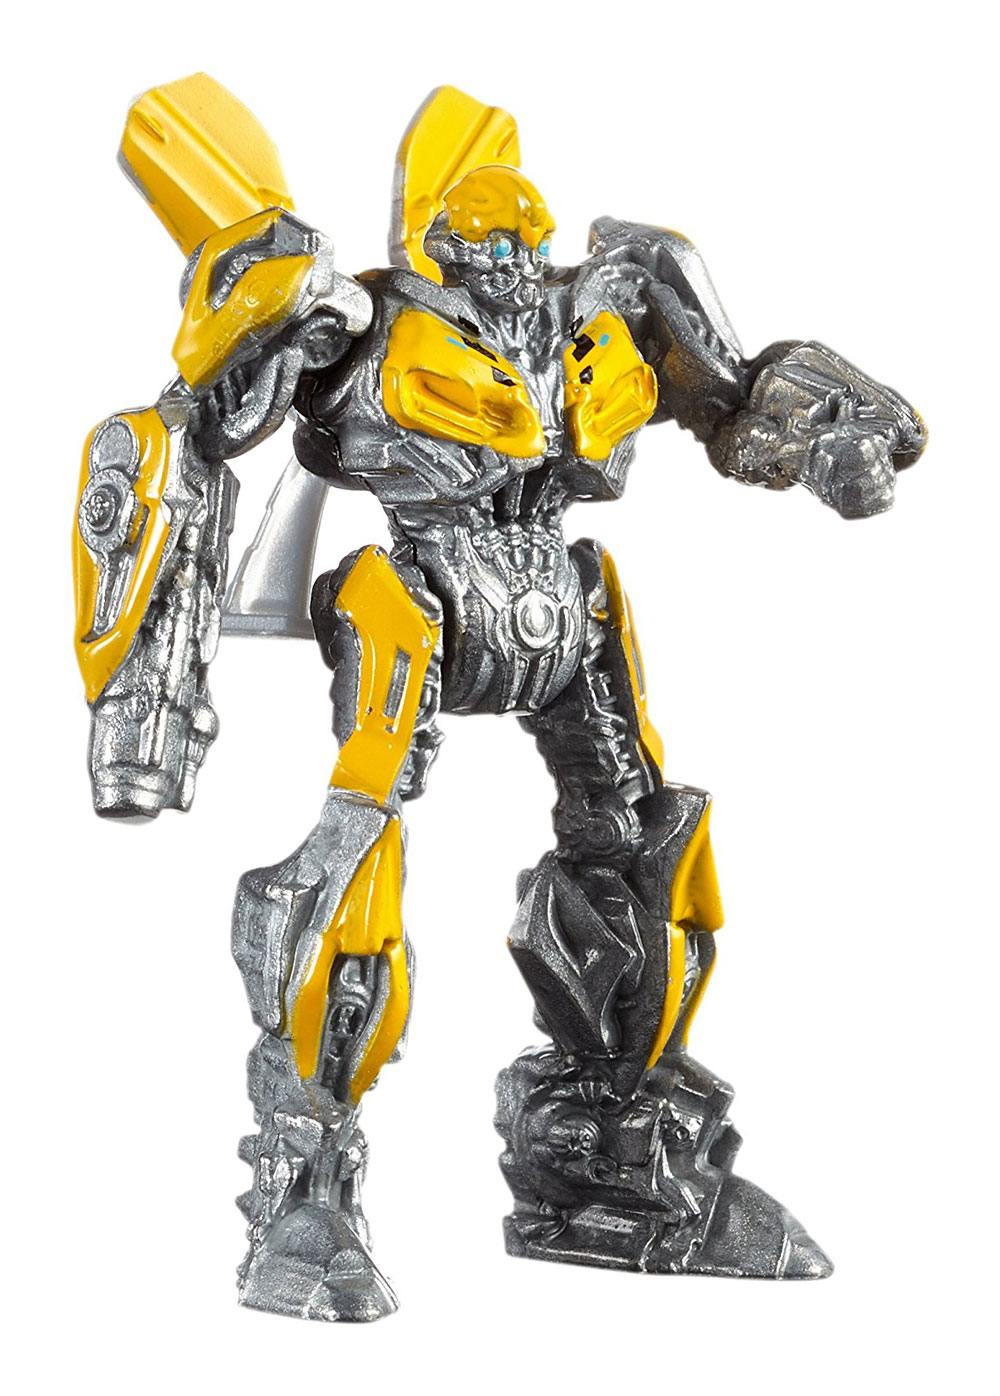 Transformers The Last Knight Diecast Model 1/64 Bumblebee Robot